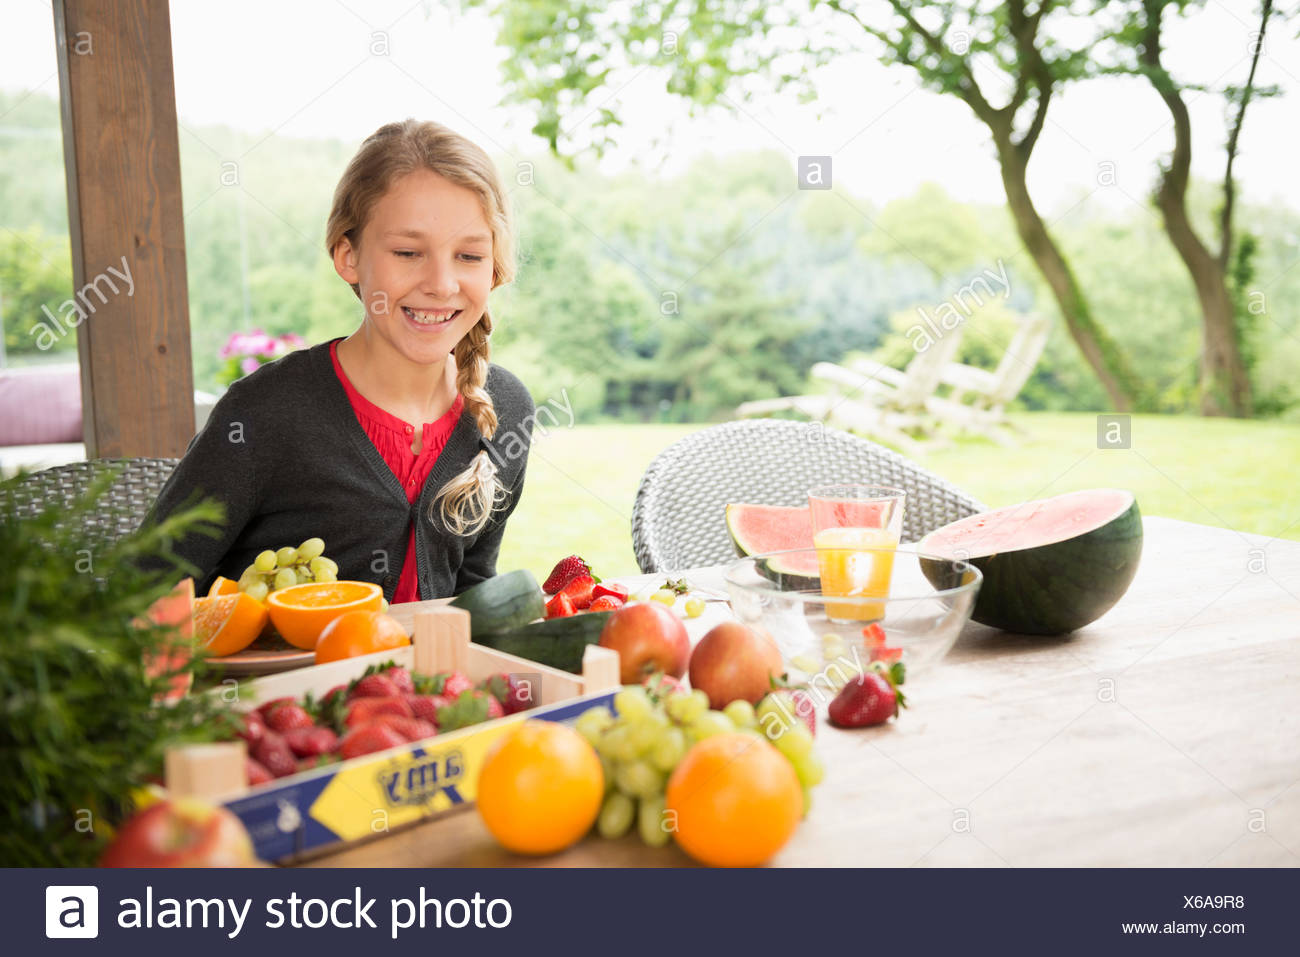 Girl at patio table with a variety of fresh fruit - Stock Image